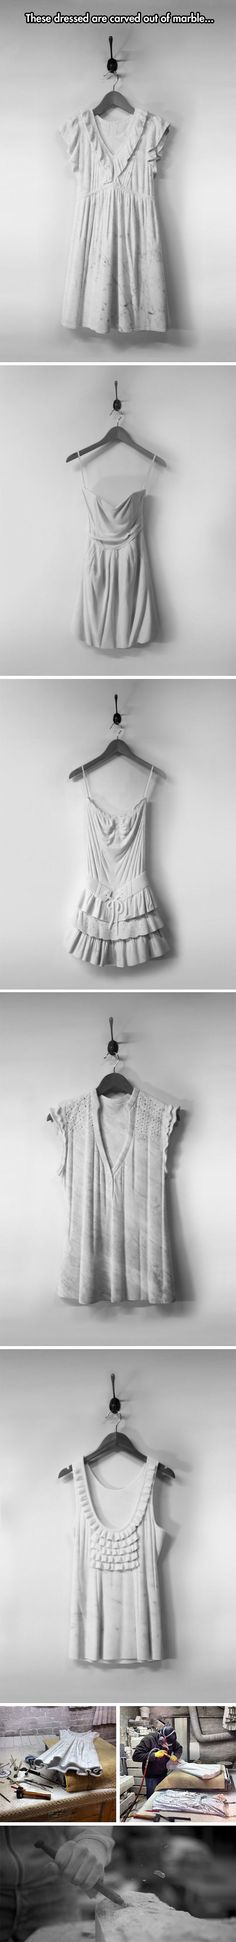 Airy Dresses Carved From Marble